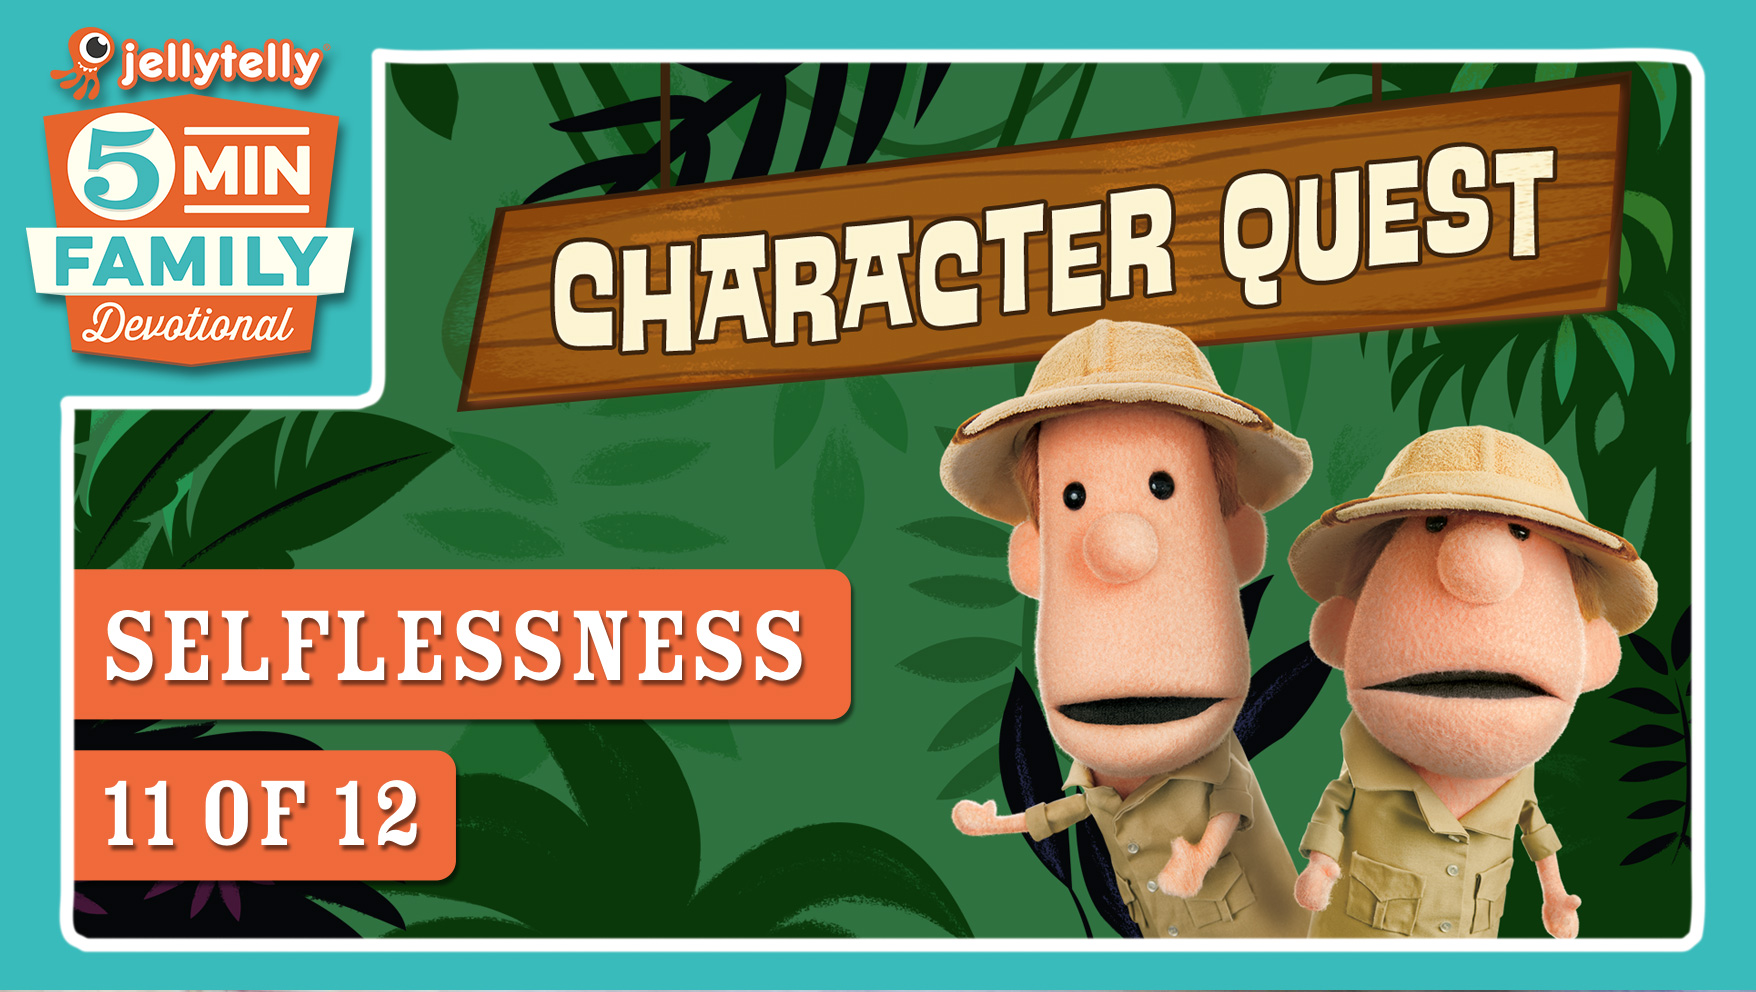 Selflessness - Character Quest 5 Minute Family Devotional